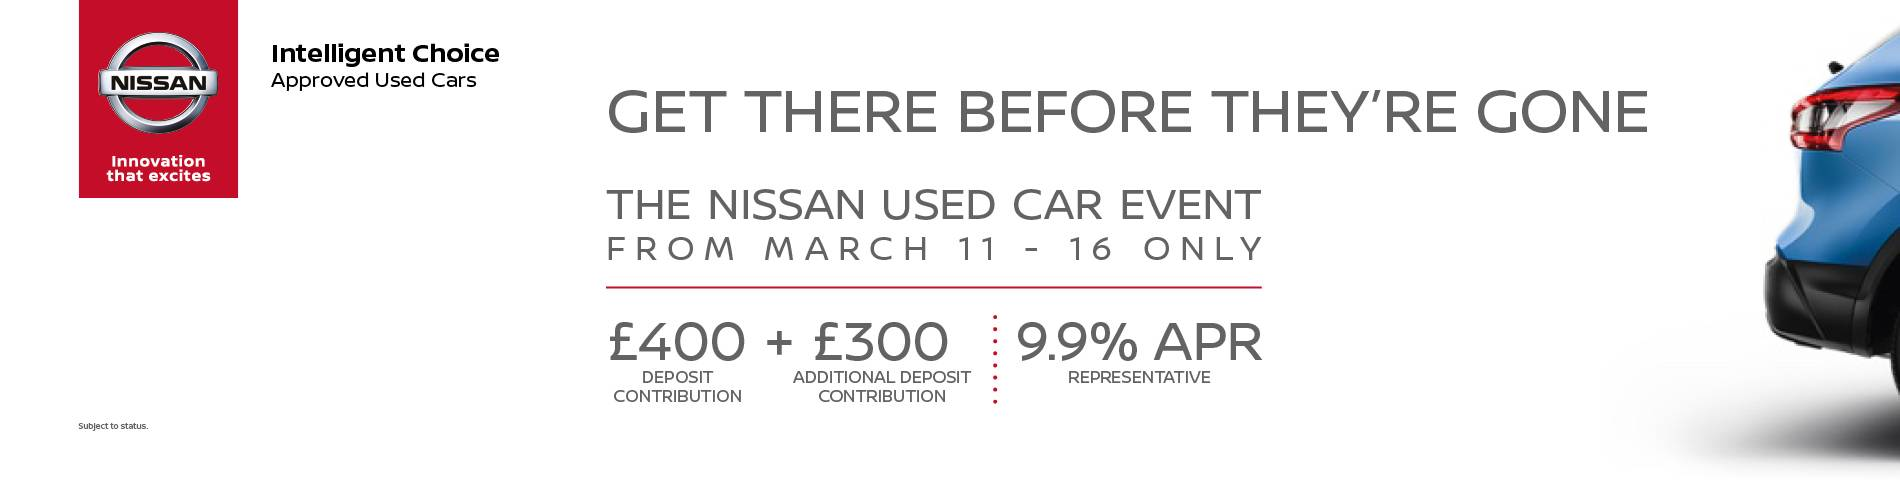 Nissan Used Car Event